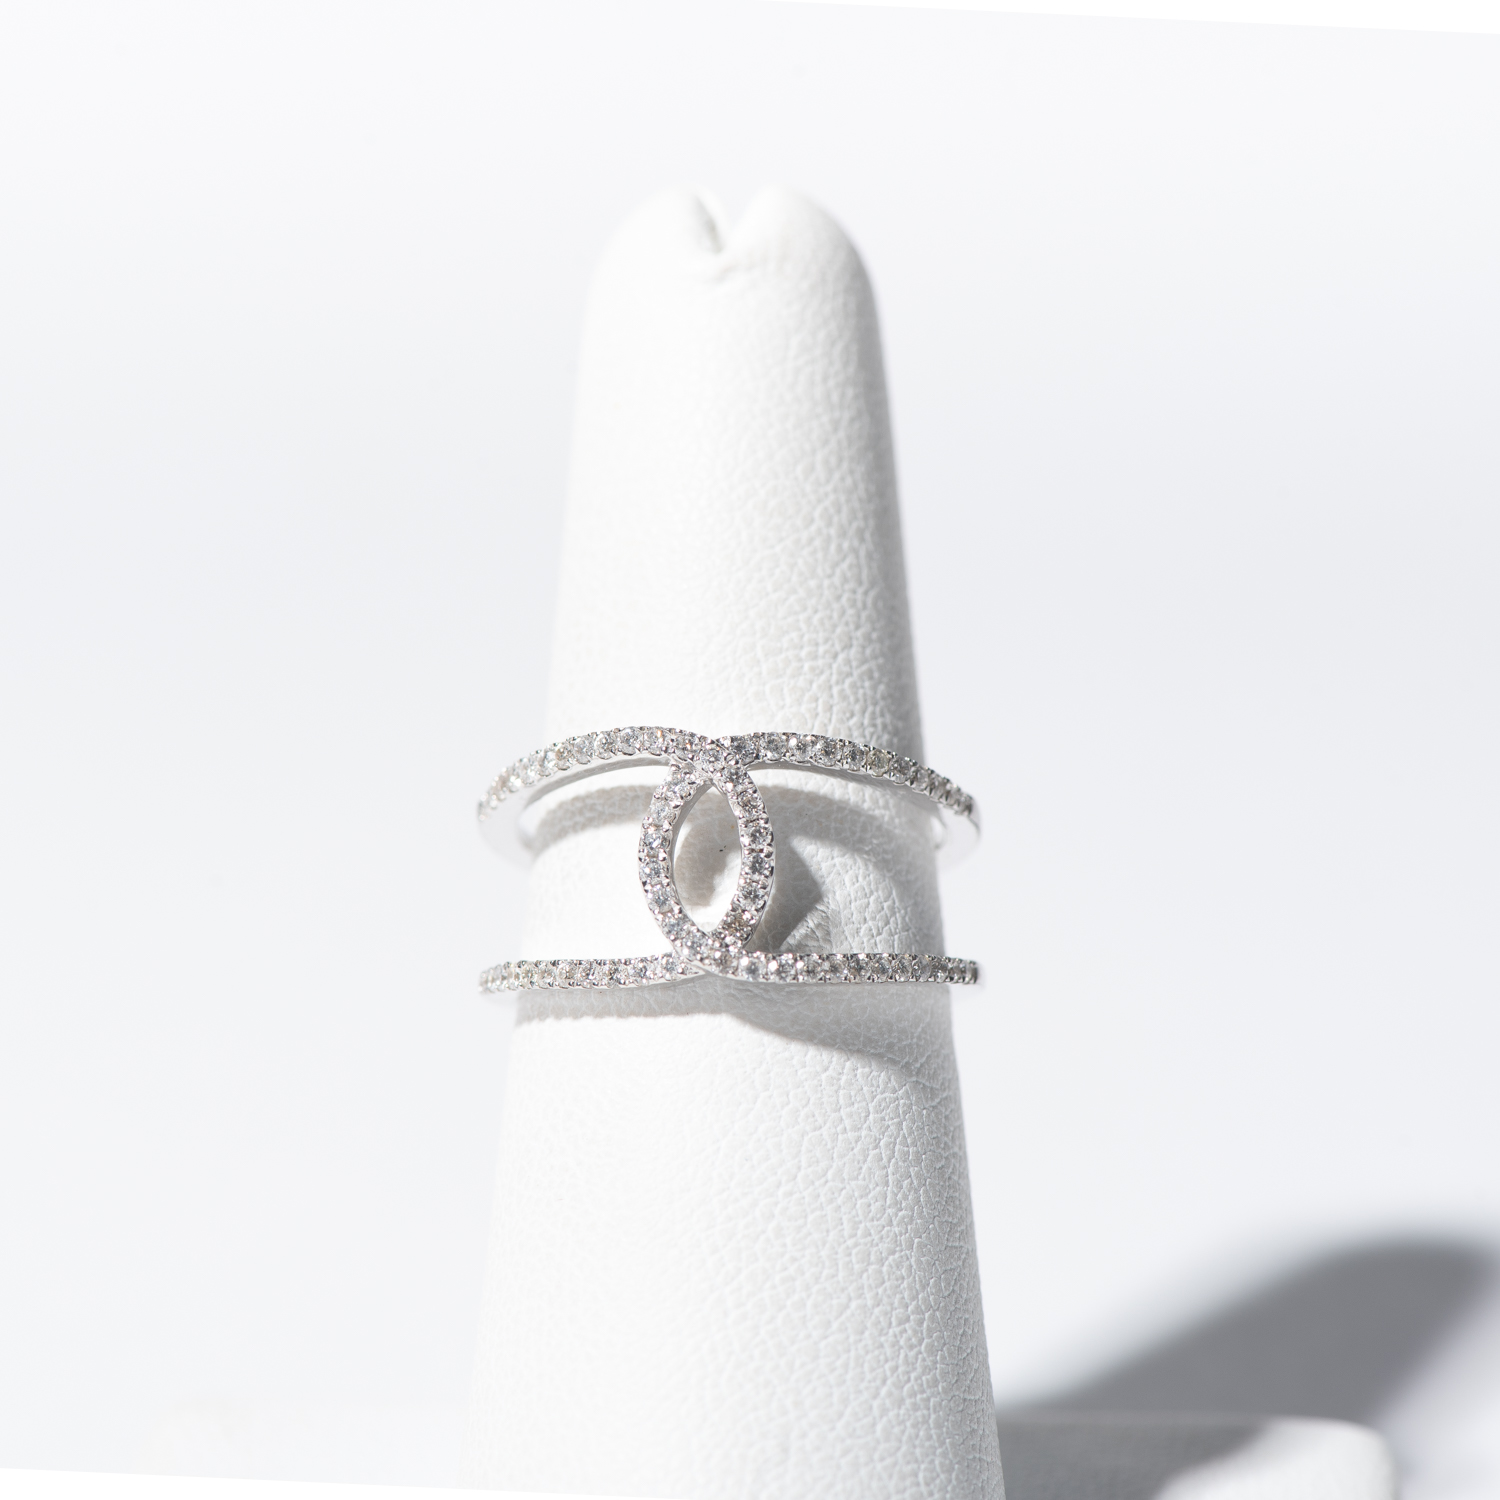 Design Twenty Four. - Open Work Crossover Design Ring Set in 14K White Gold